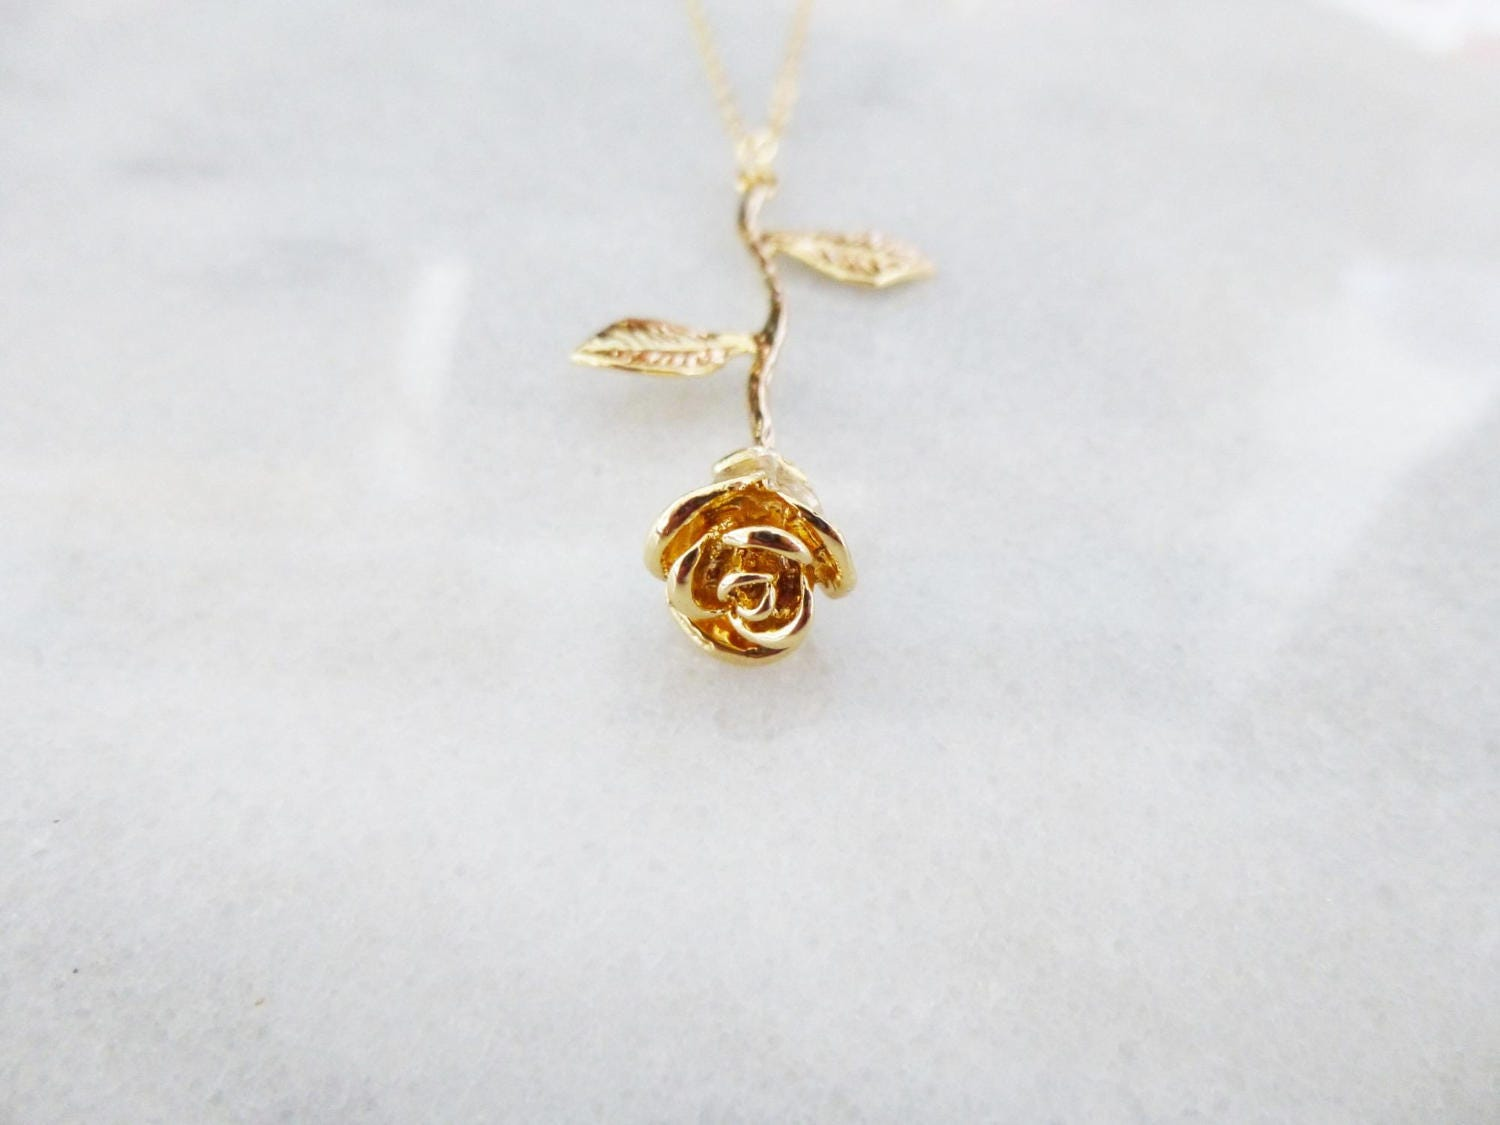 Gold Rose Necklace Beauty And The Beast Jewelry Fairytale